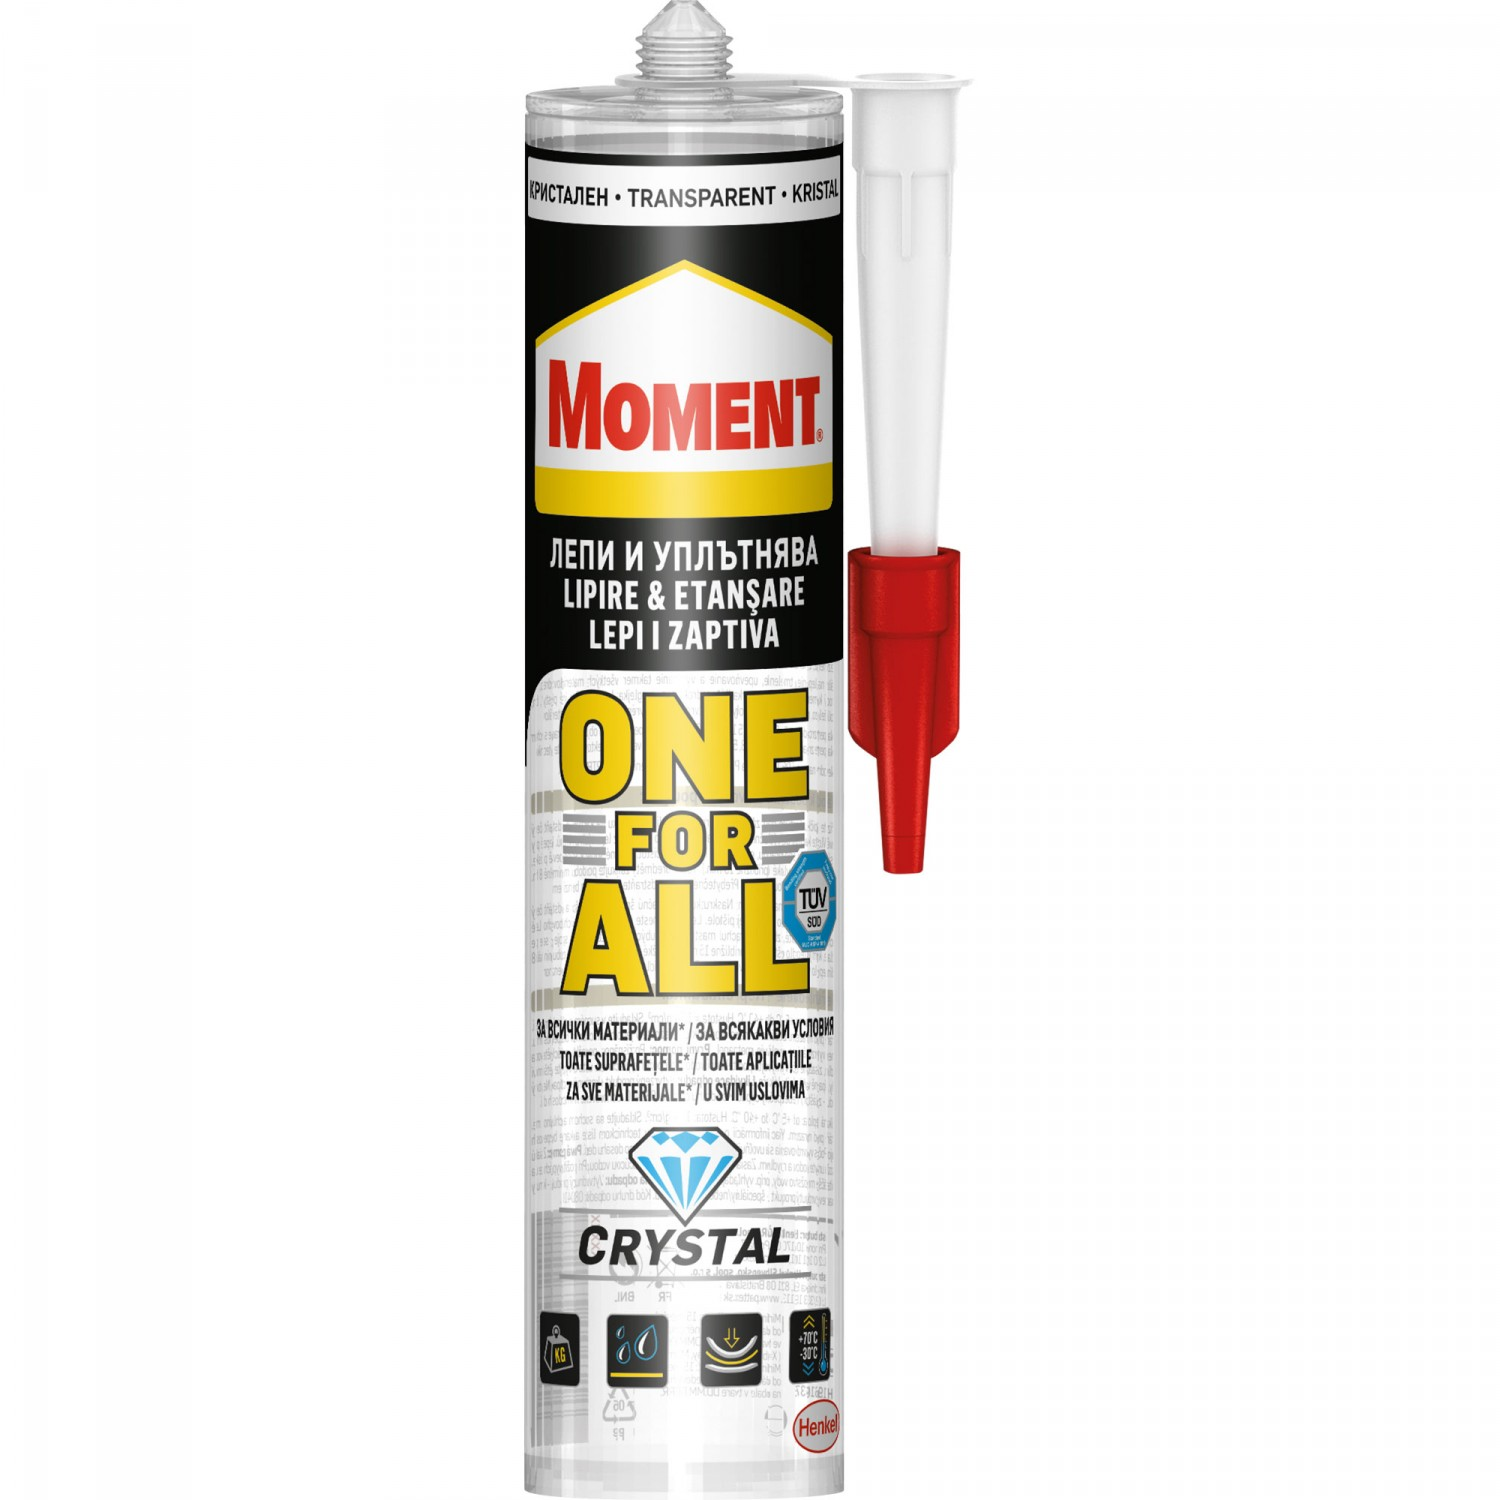 SILICON ONE FOR ALL CRYSTAL 290 gr MOMENT